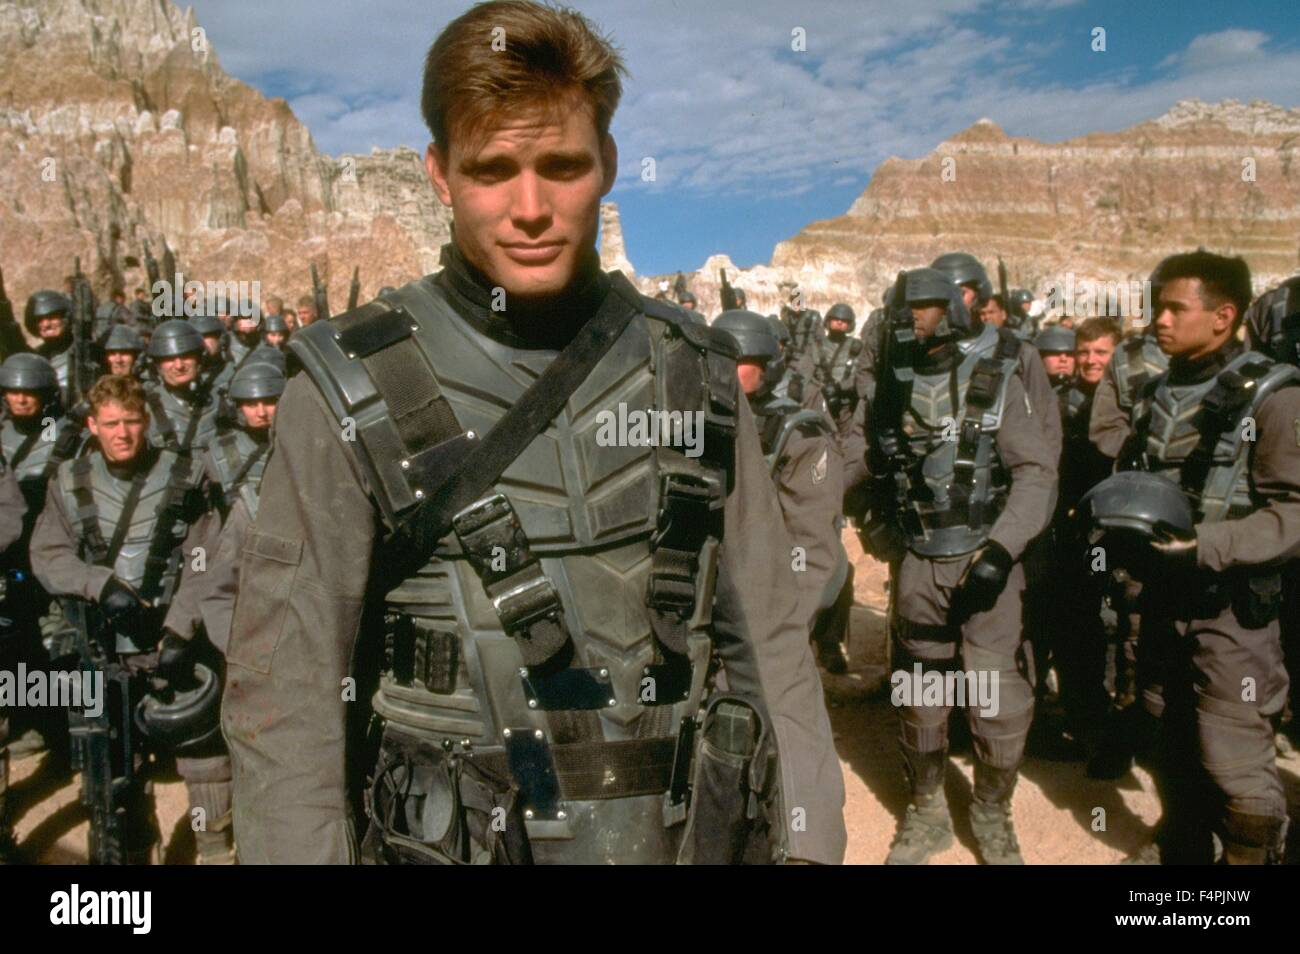 a review of the movie starship troopers by paul verhoeven Even more astounding is jacques rivette would hail starship troopers as superior to jurassic park and compare verhoeven to roy lichtenstein even the utter madness of showgirls was the subject of a round table discussion by film quarterly.